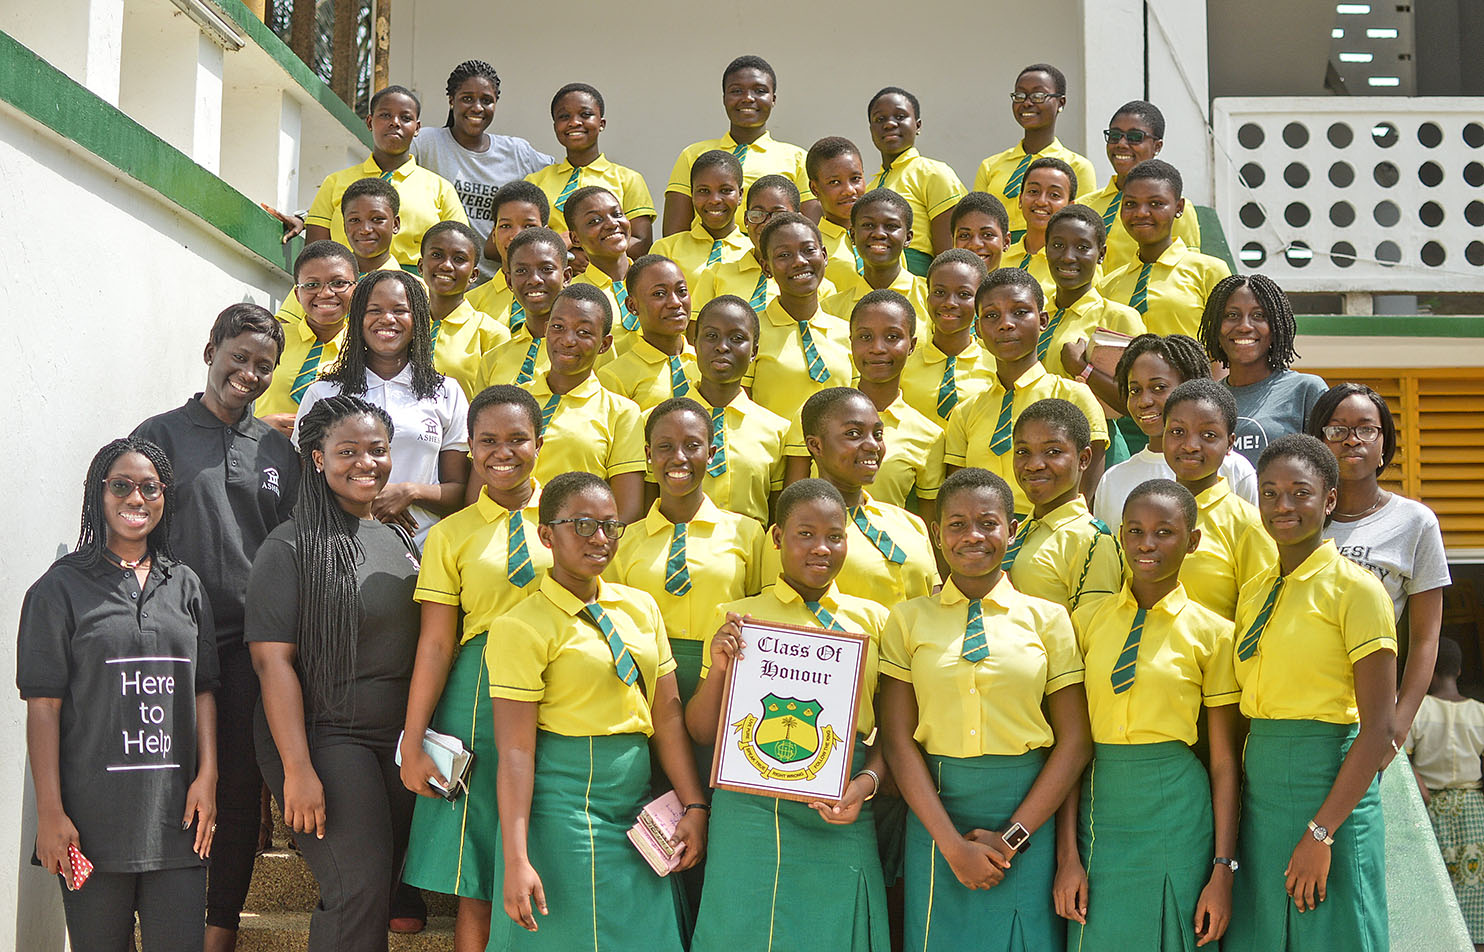 wesley girls What does weslee mean w eslee as a girls' name is pronounced wez-leeit is of old english origin, and the meaning of weslee is western meadow feminine of wesleyusually used as homage to john and charles wesley, the founders of the methodist church in the 18th century.